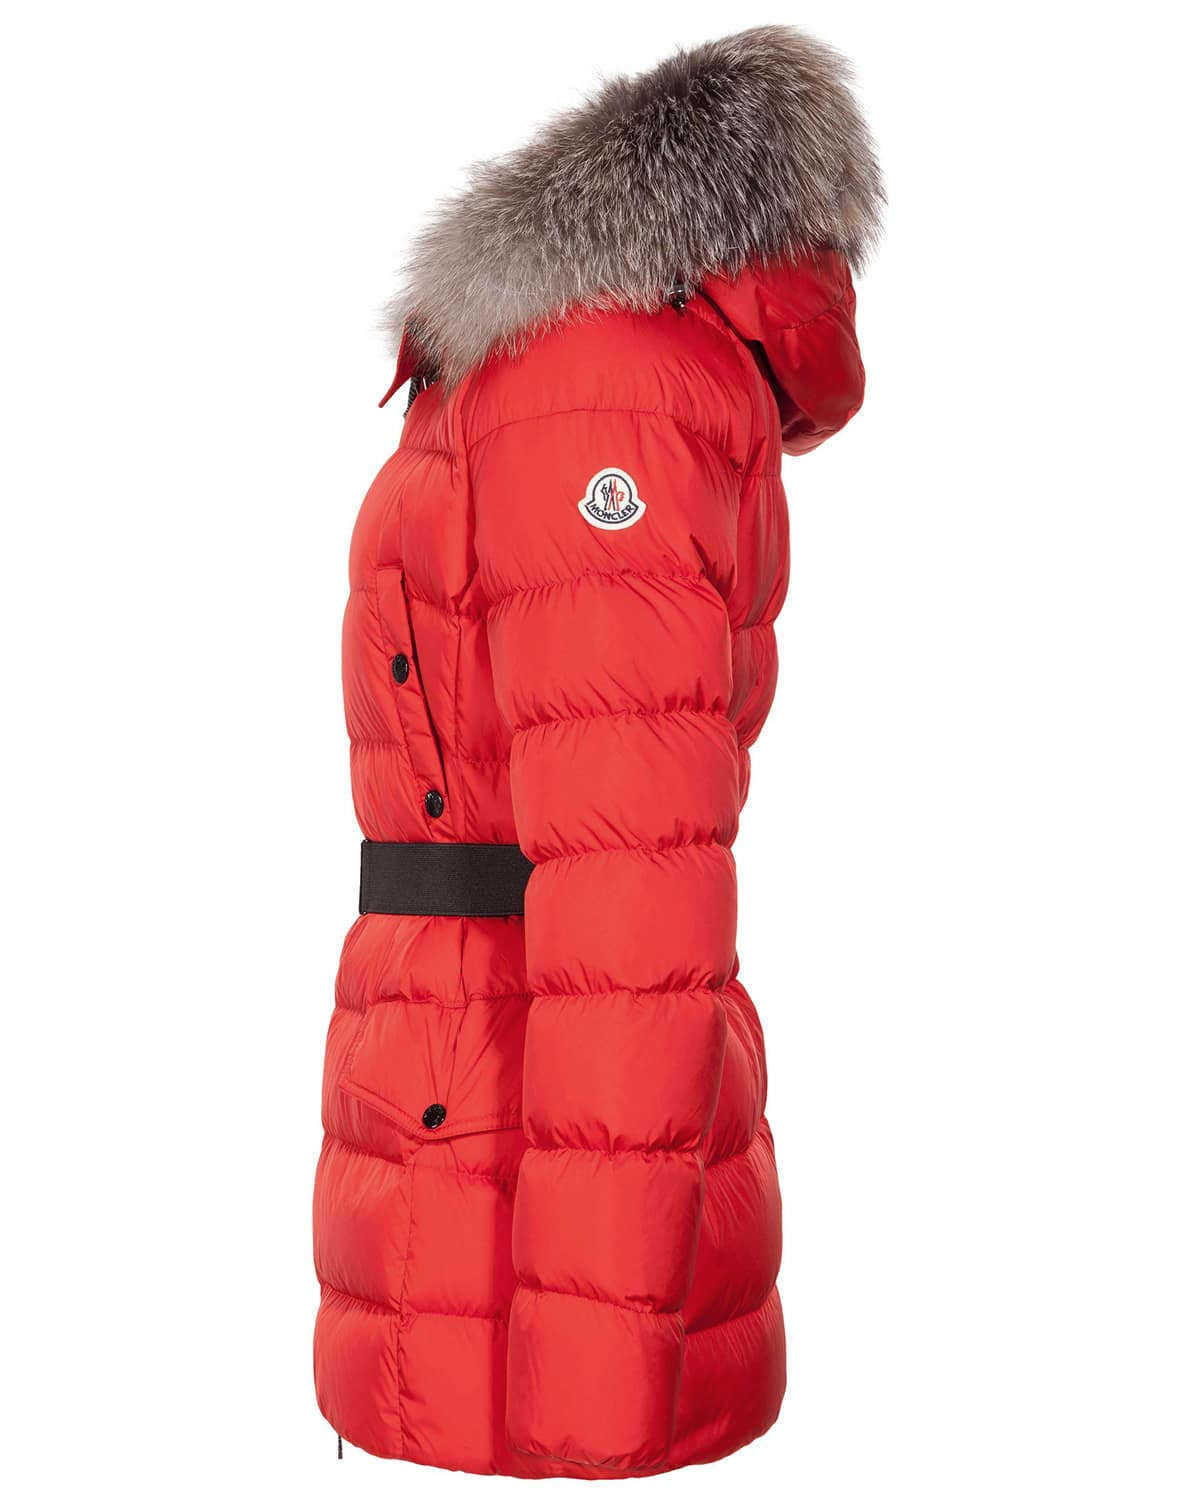 Moncler Damen Daunenjacke Clion Natur Weiss | SAILERstyle